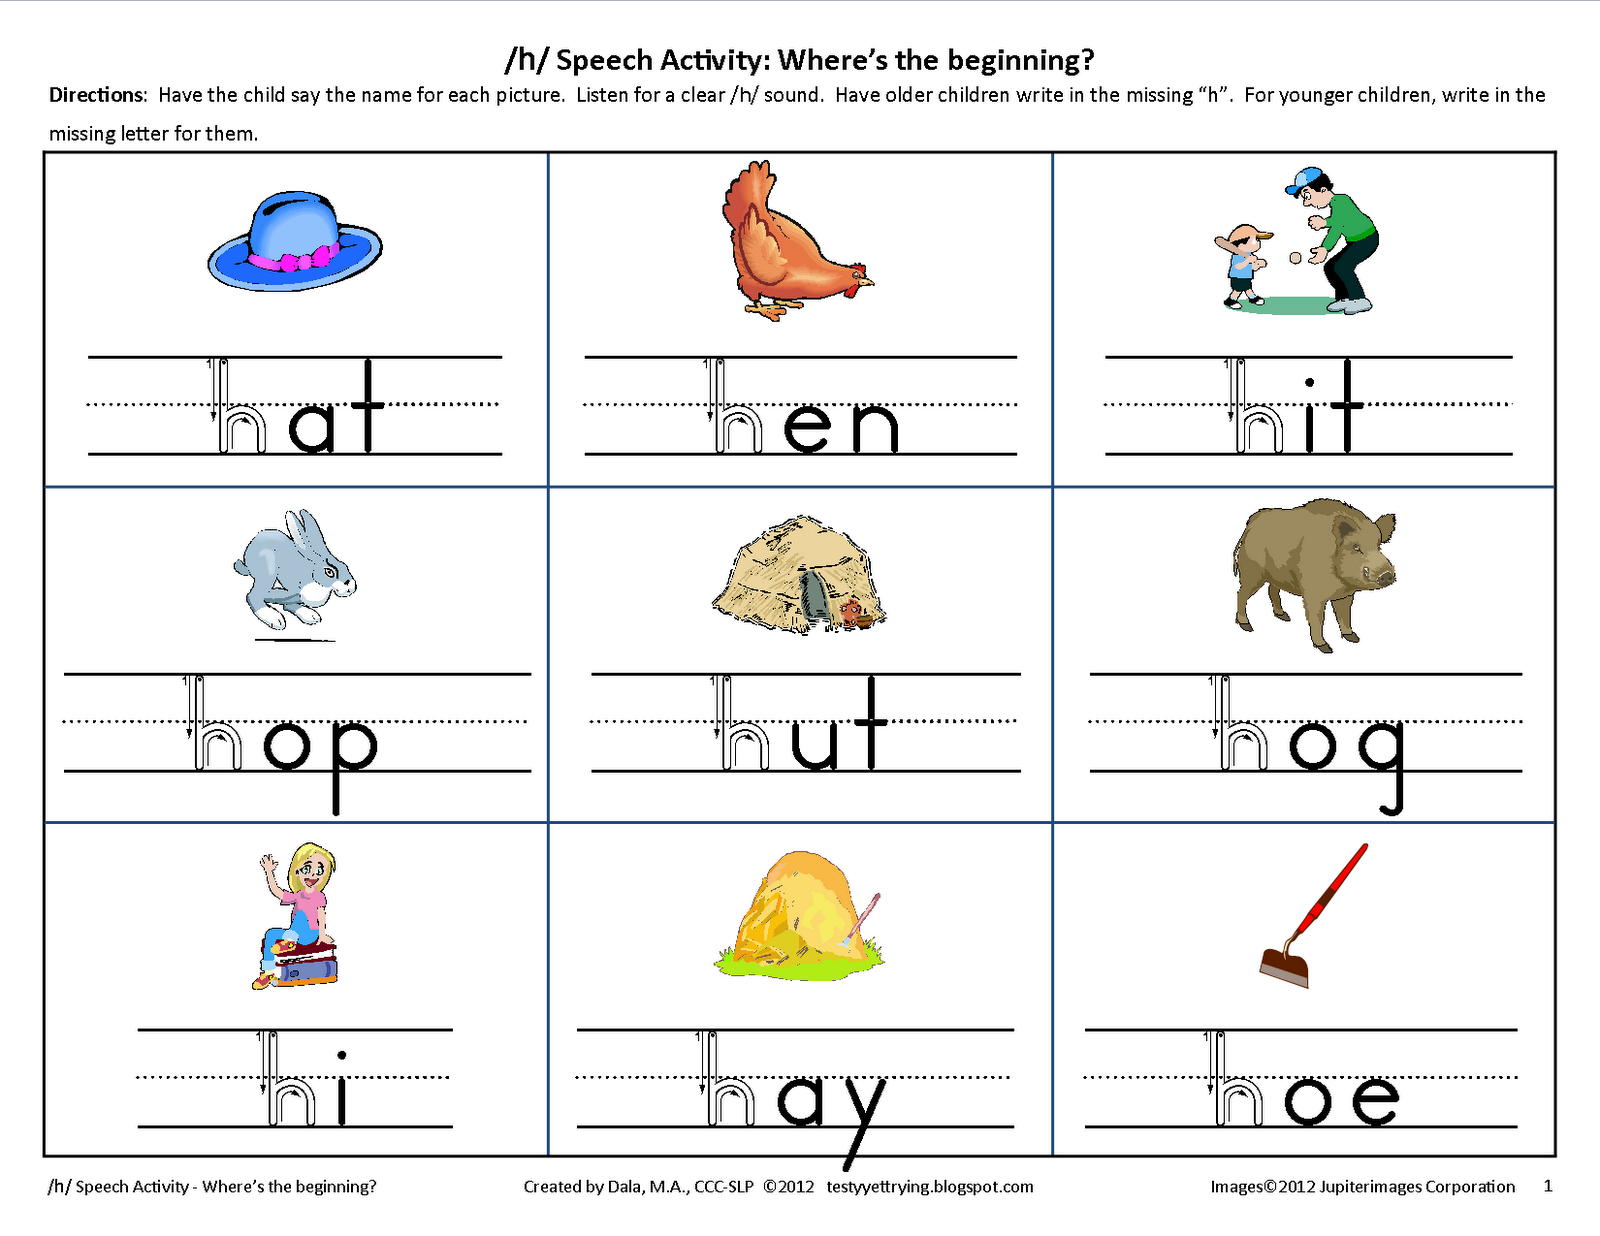 Proatmealus  Nice Testy Yet Trying Initial H Speech Worksheet With Extraordinary Make Classroom Teachers Happy Reinforce Phonics And Handwriting And Practice Speech All At The Same Time With Attractive Multiples Of  Worksheets Also Feelings Worksheets For Children In Addition Present Continuous Esl Worksheet And Worksheets For Preschool Printable As Well As Free Reading Comprehension Ks Worksheets Printable Additionally Factoring Numbers Worksheets From Testyyettryingblogspotcom With Proatmealus  Extraordinary Testy Yet Trying Initial H Speech Worksheet With Attractive Make Classroom Teachers Happy Reinforce Phonics And Handwriting And Practice Speech All At The Same Time And Nice Multiples Of  Worksheets Also Feelings Worksheets For Children In Addition Present Continuous Esl Worksheet From Testyyettryingblogspotcom